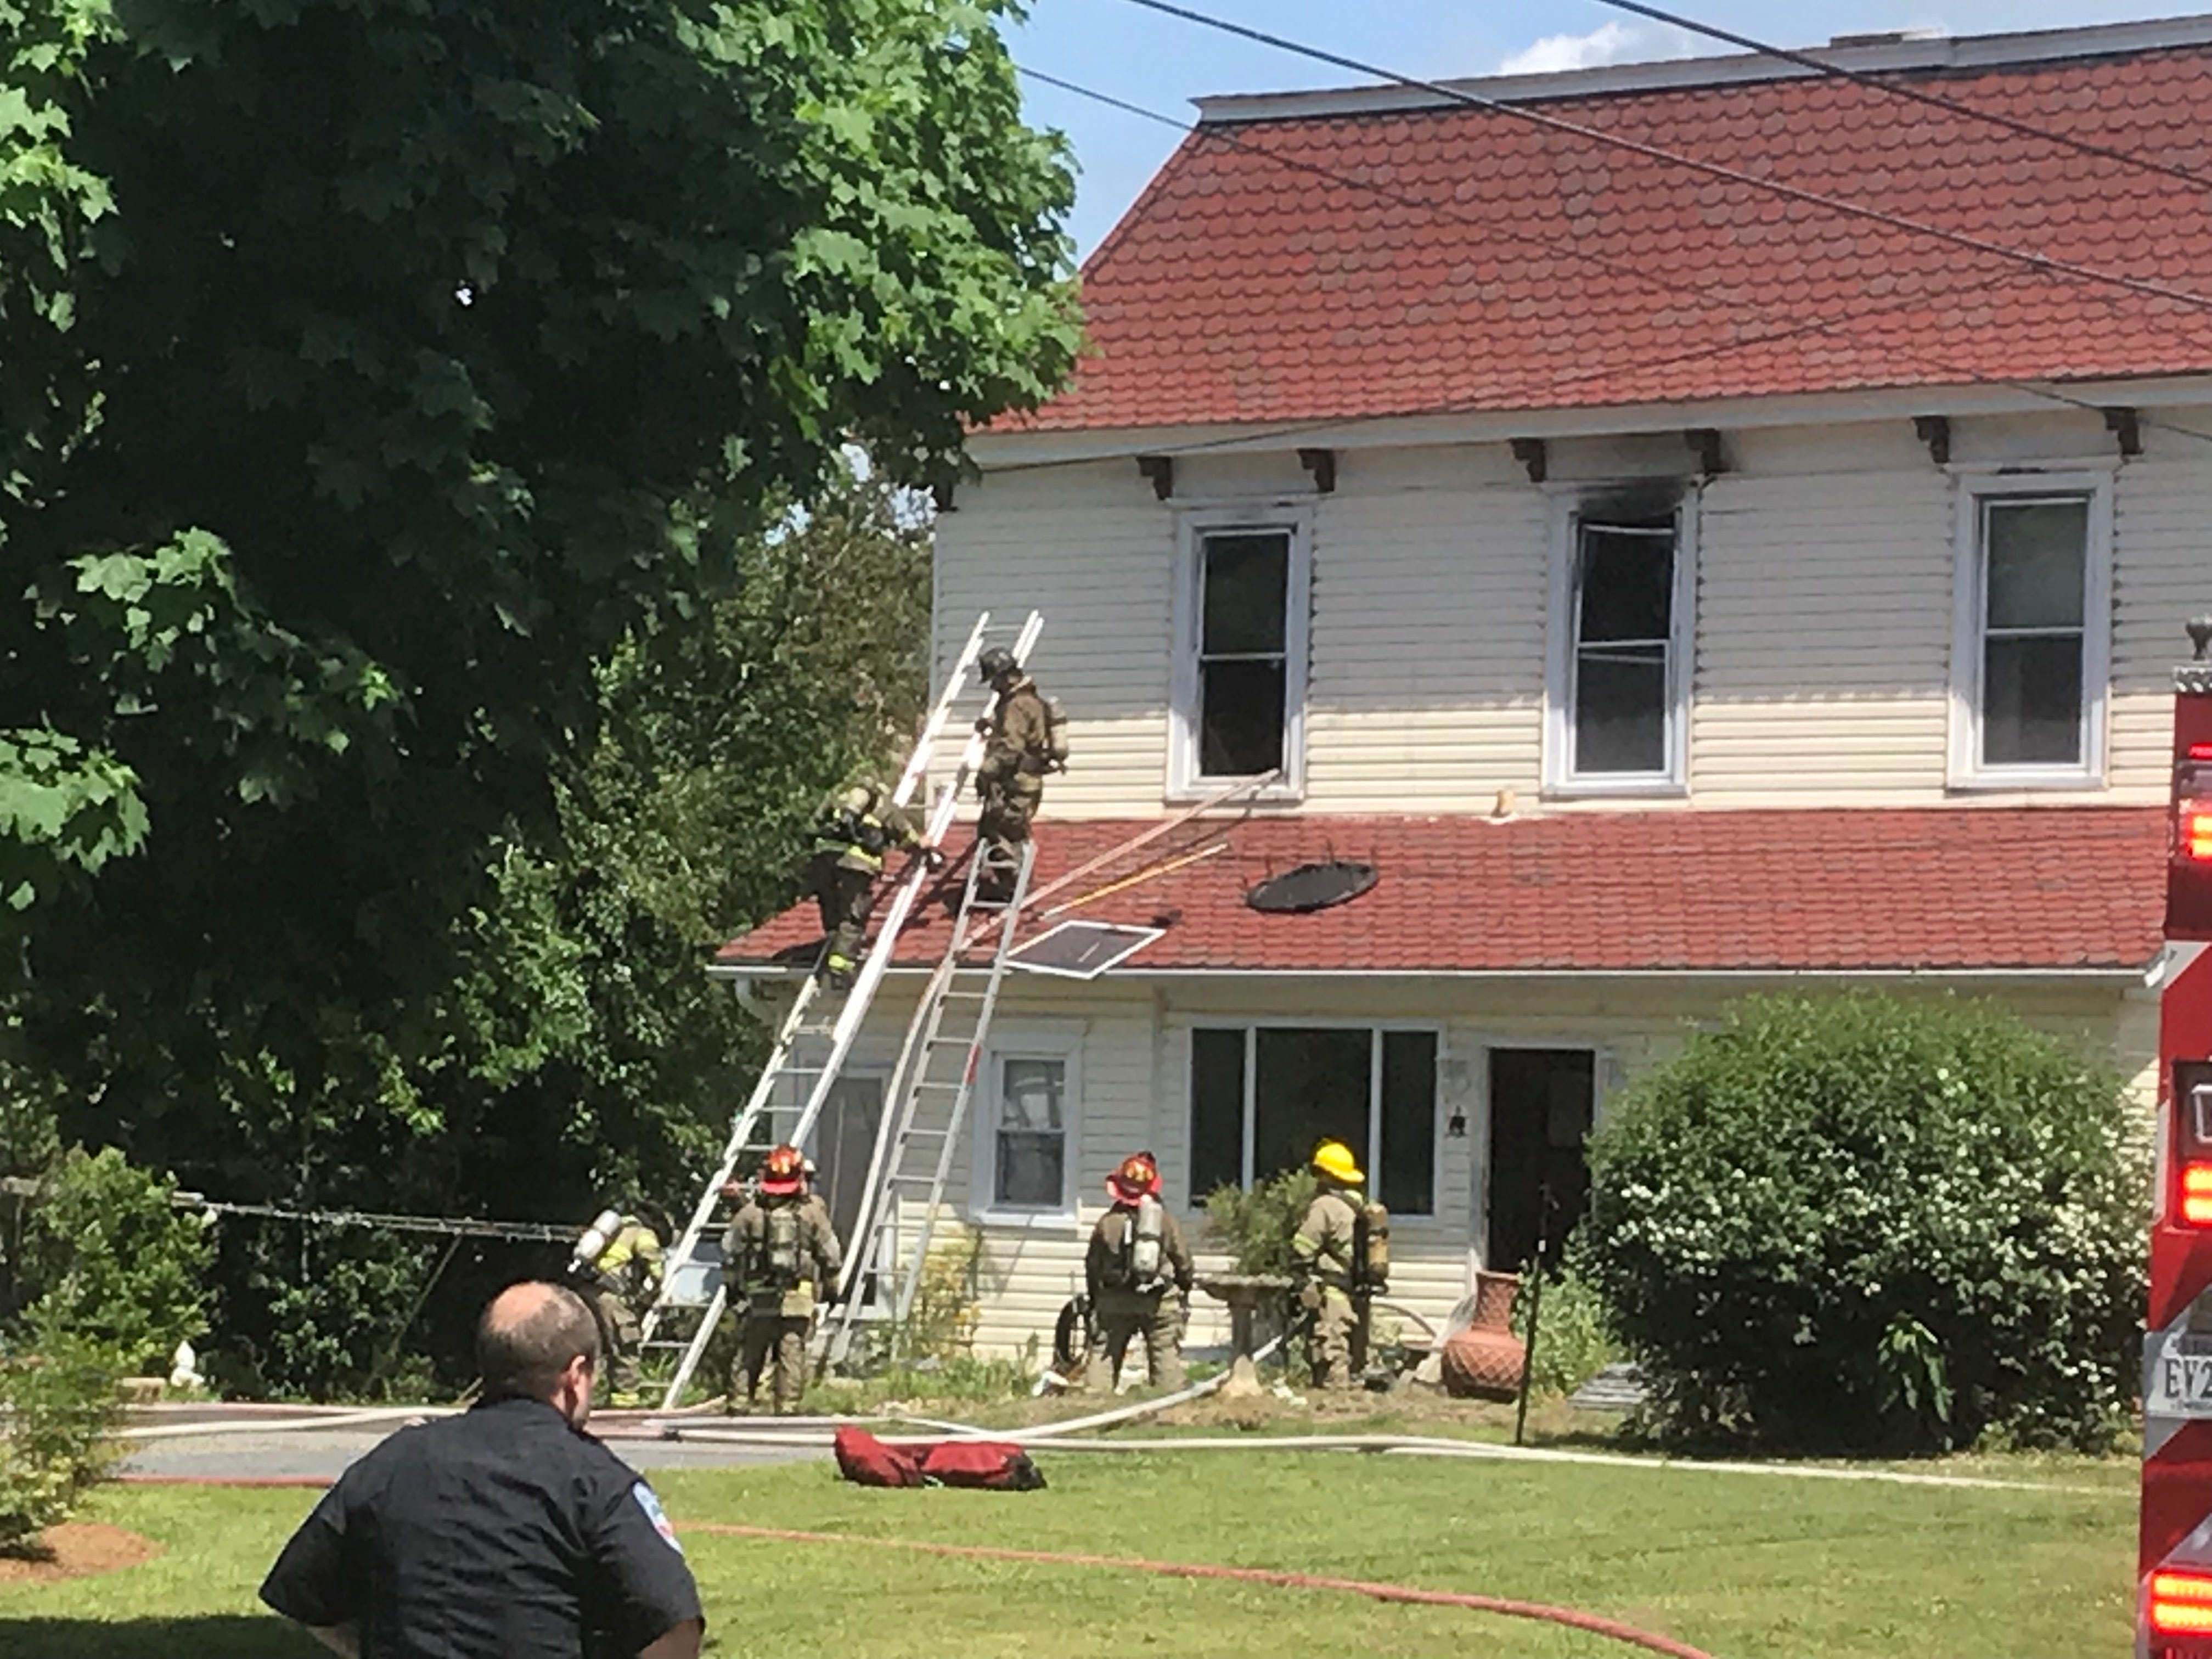 Firefighters battle a house fire at 2 Holly Street in Onancock, Virginia on Thursday, May 9, 2019.